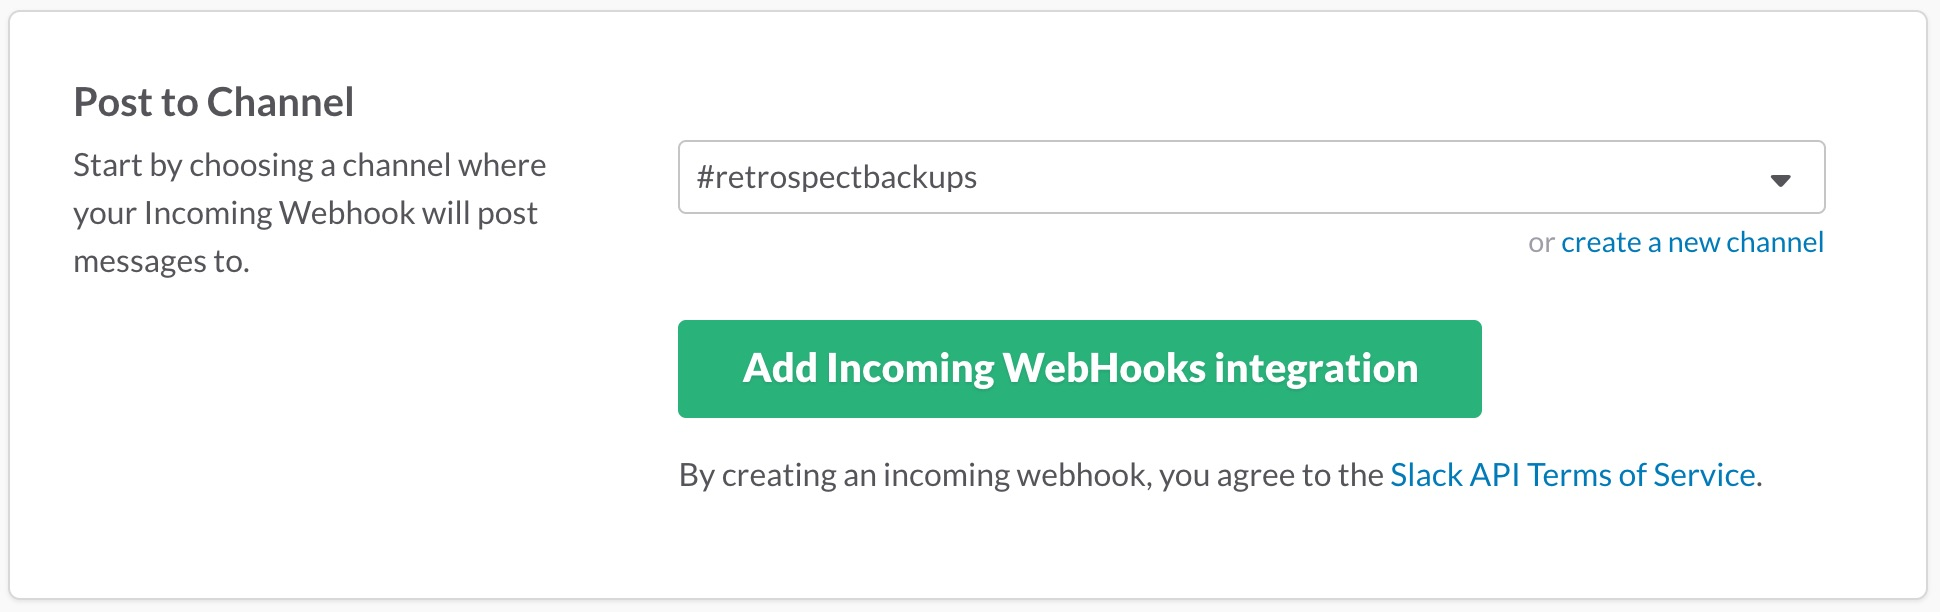 Add Incoming WebHooks integration for Retrospect